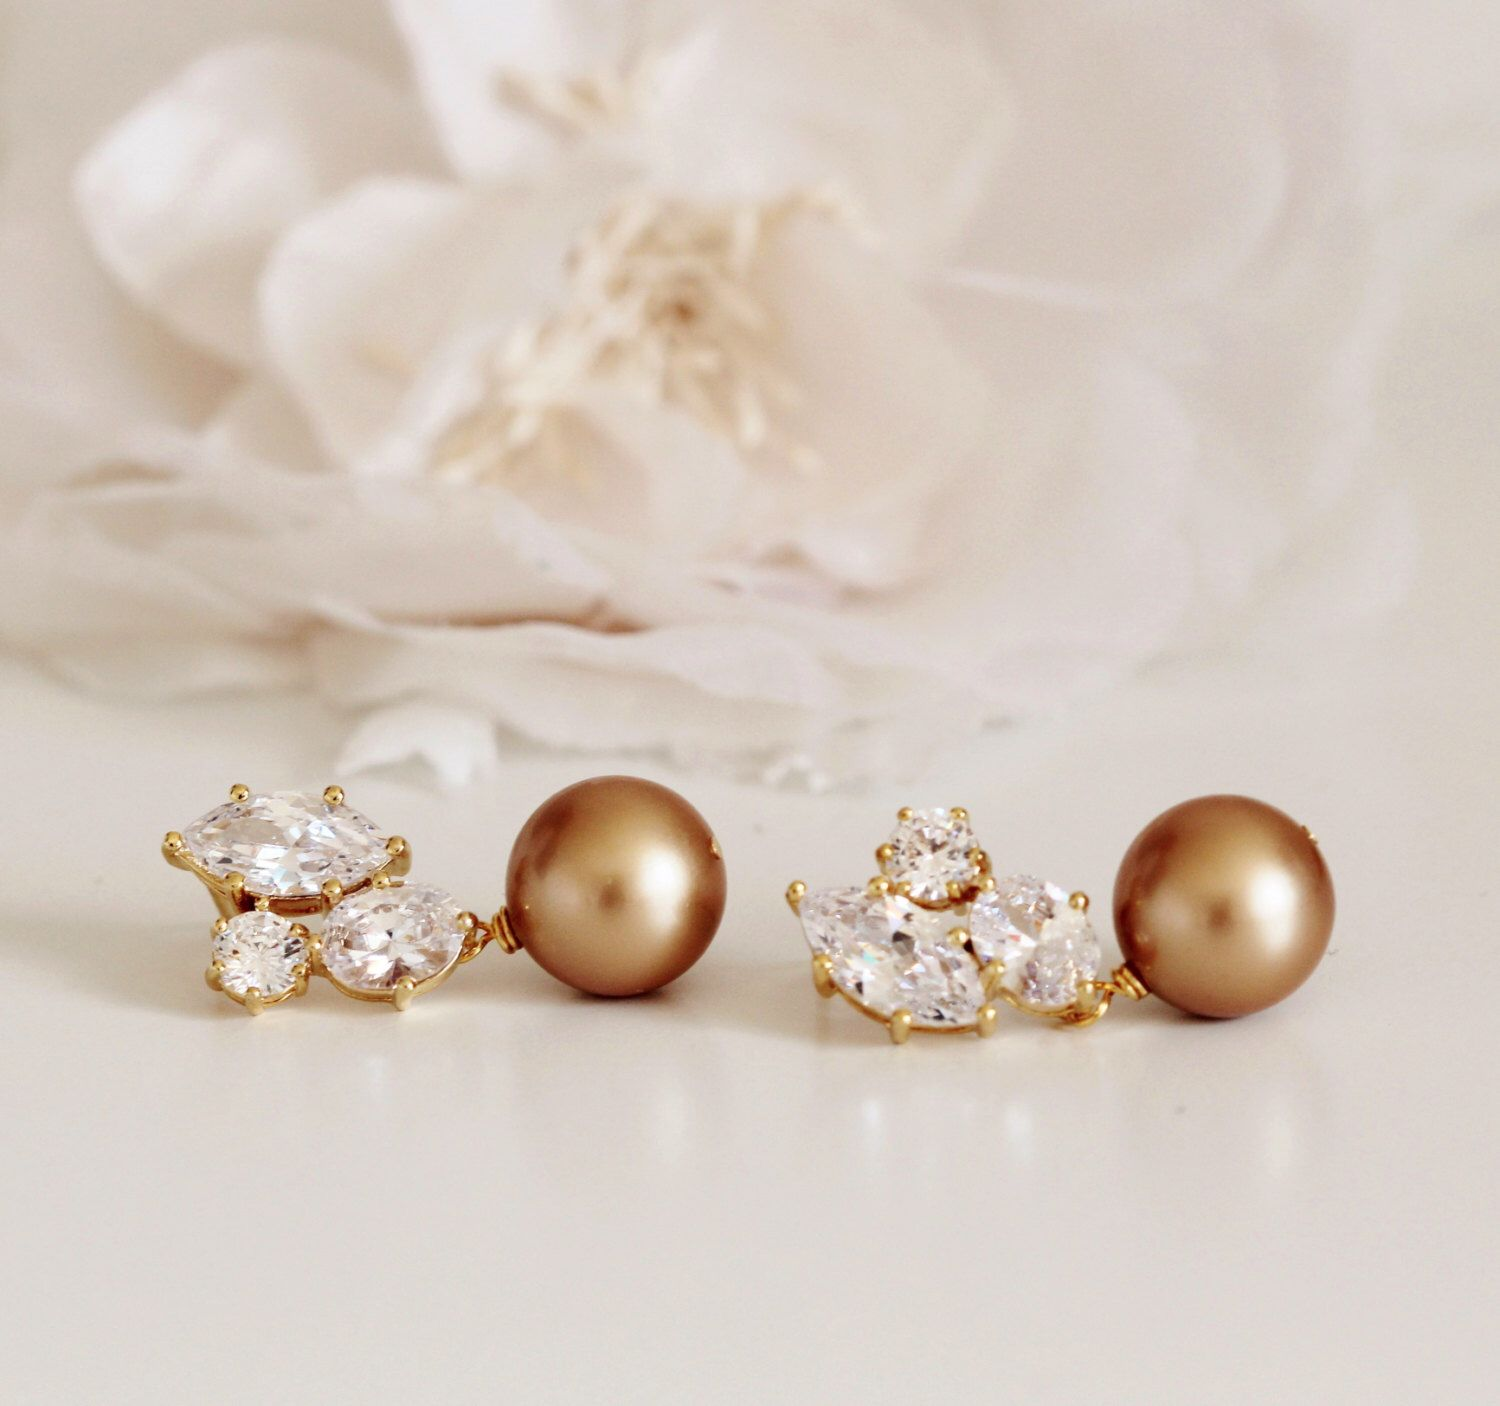 Pearl Wedding Jewelry Mother Of The Bride Gift Vintage Gold Swarovski Earrings Bridal By Dreamislandjewellery On Etsy